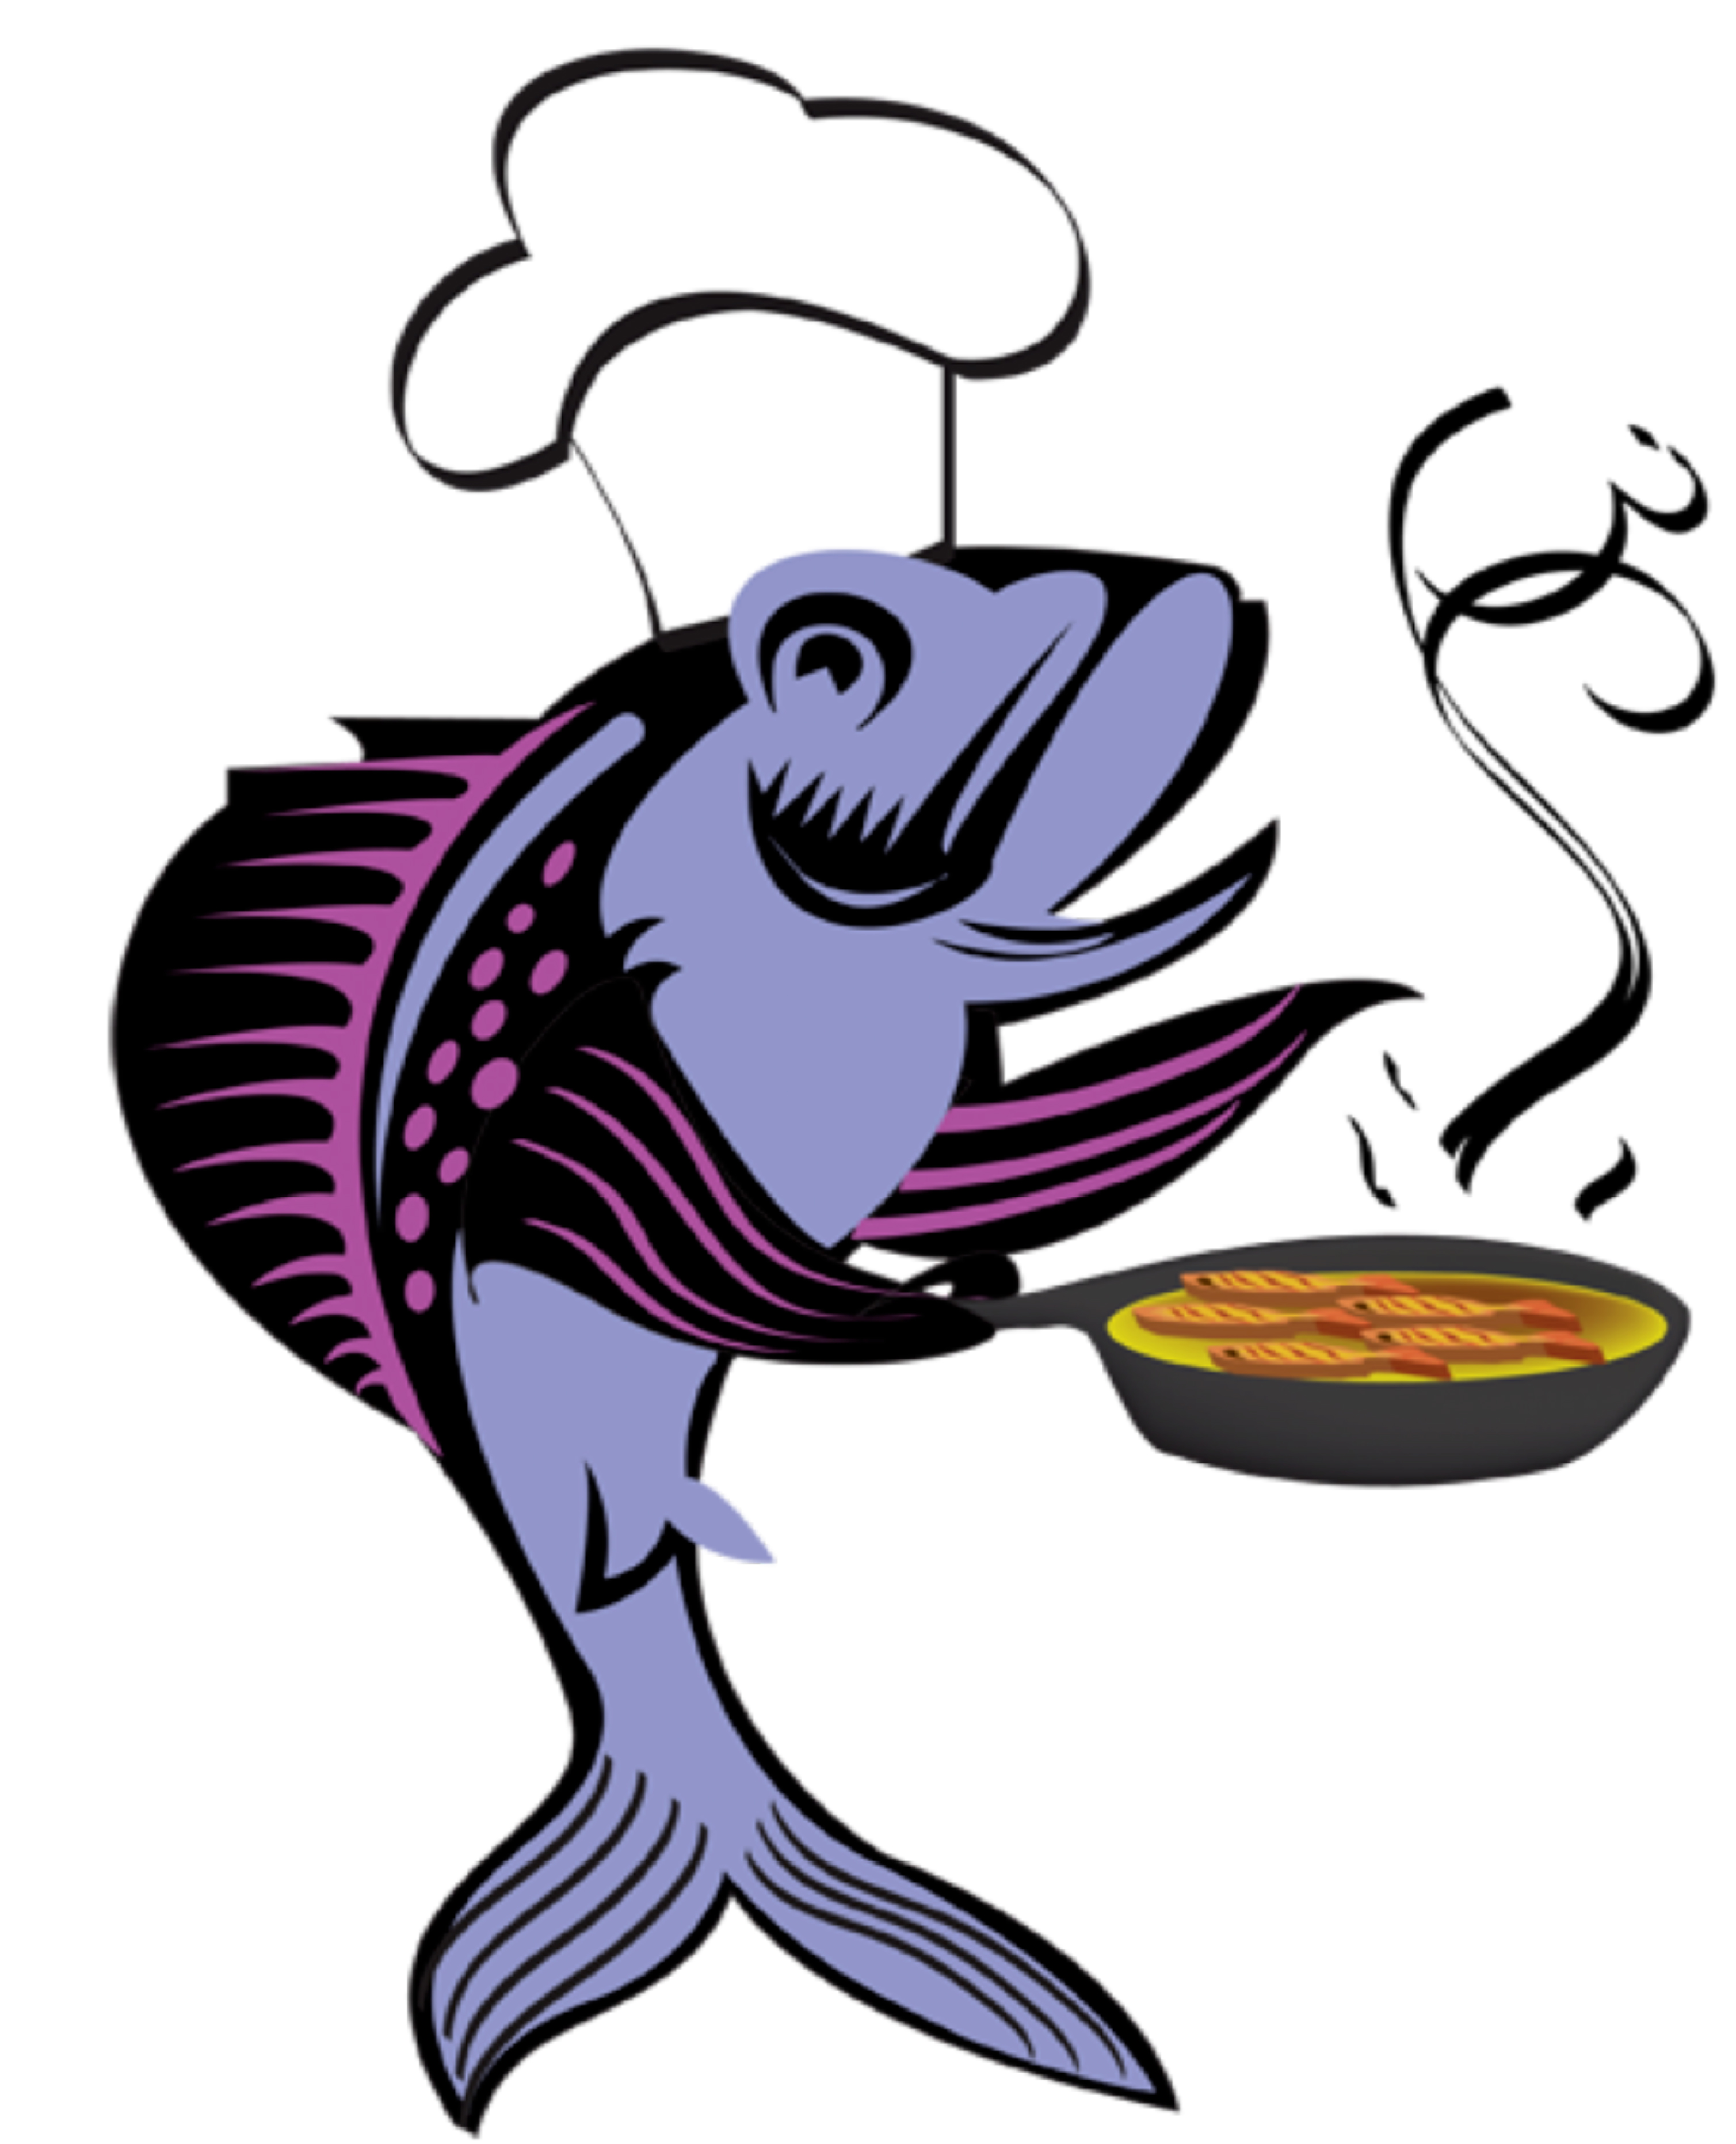 3017x3725 Free Png Fish Fry Transparent Fish Fry.png Images. Pluspng